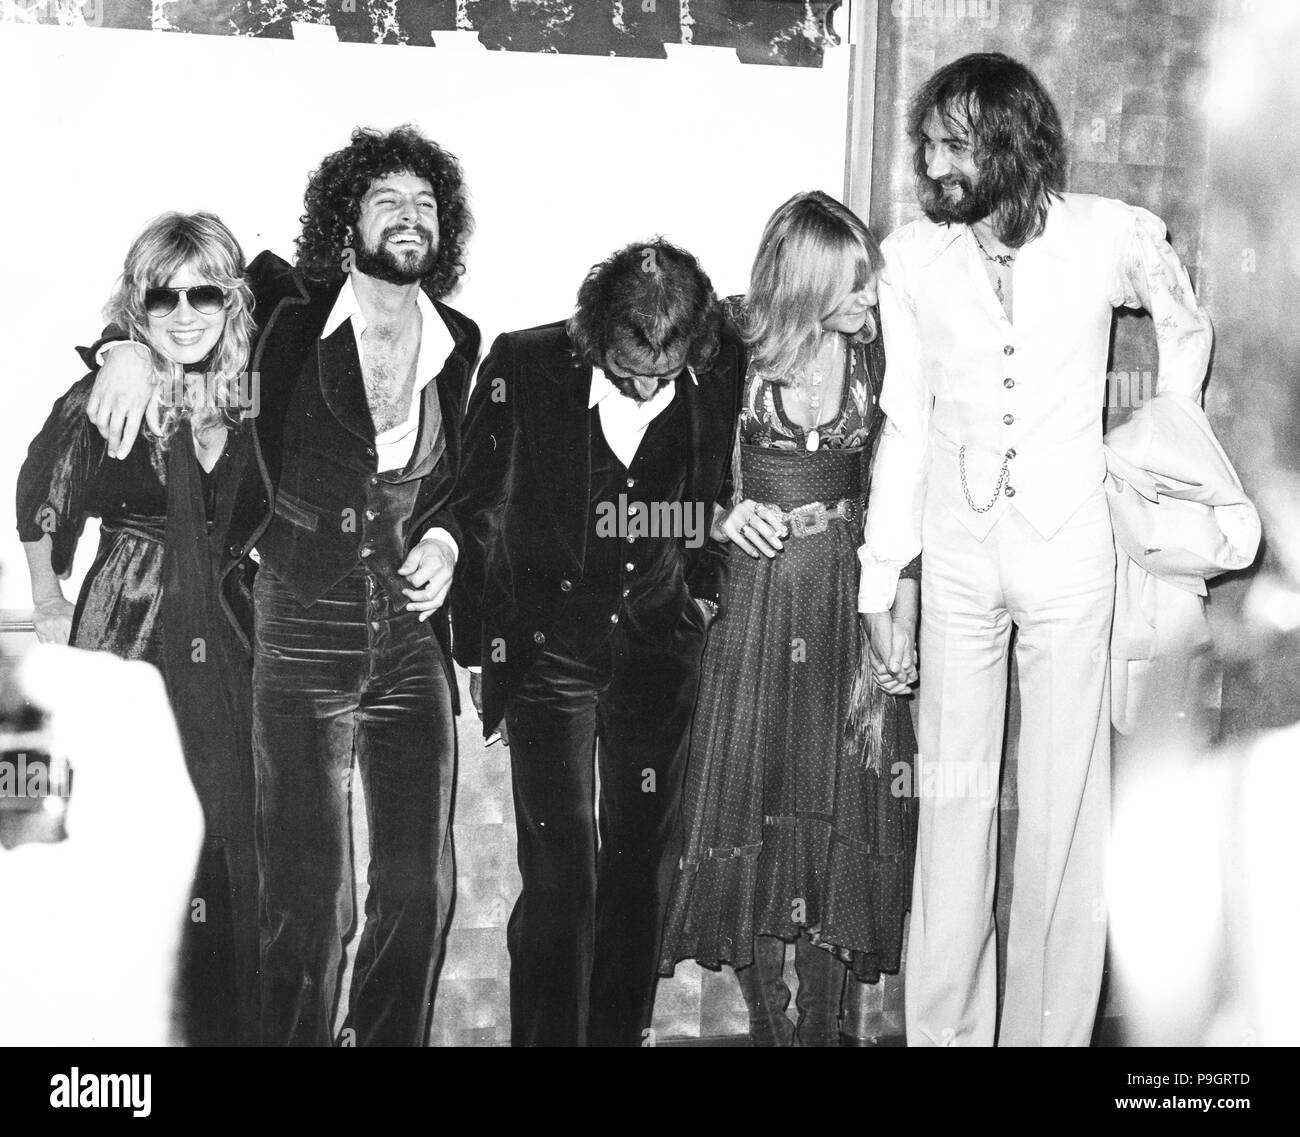 Fleetwood Mac Stock Photos & Fleetwood Mac Stock Images - Alamy